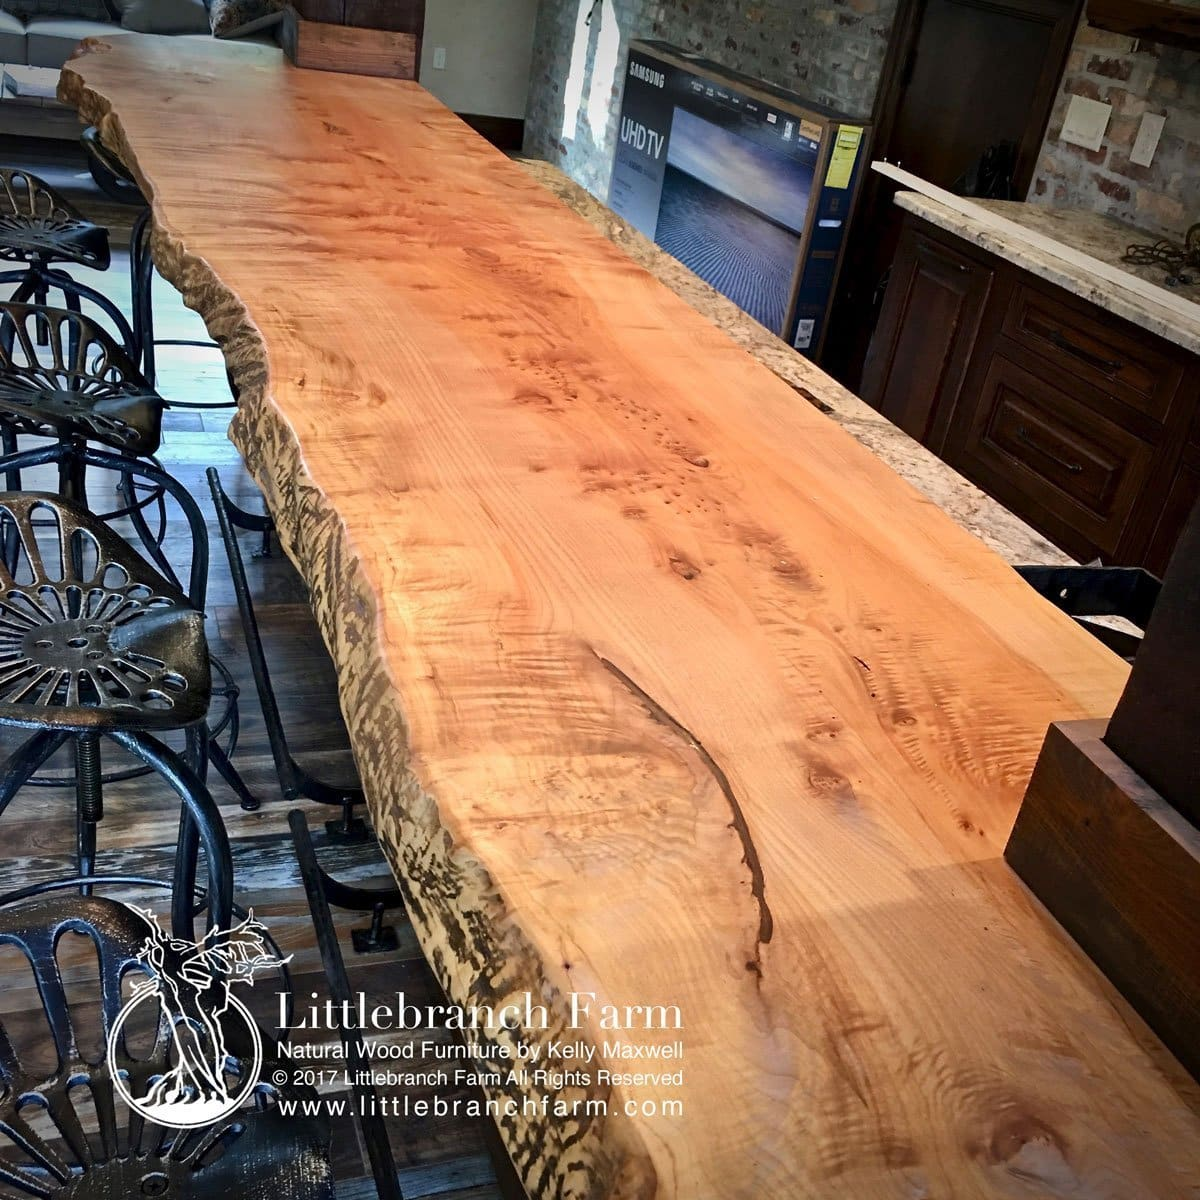 Live edge countertops in southwest kitchen decor.